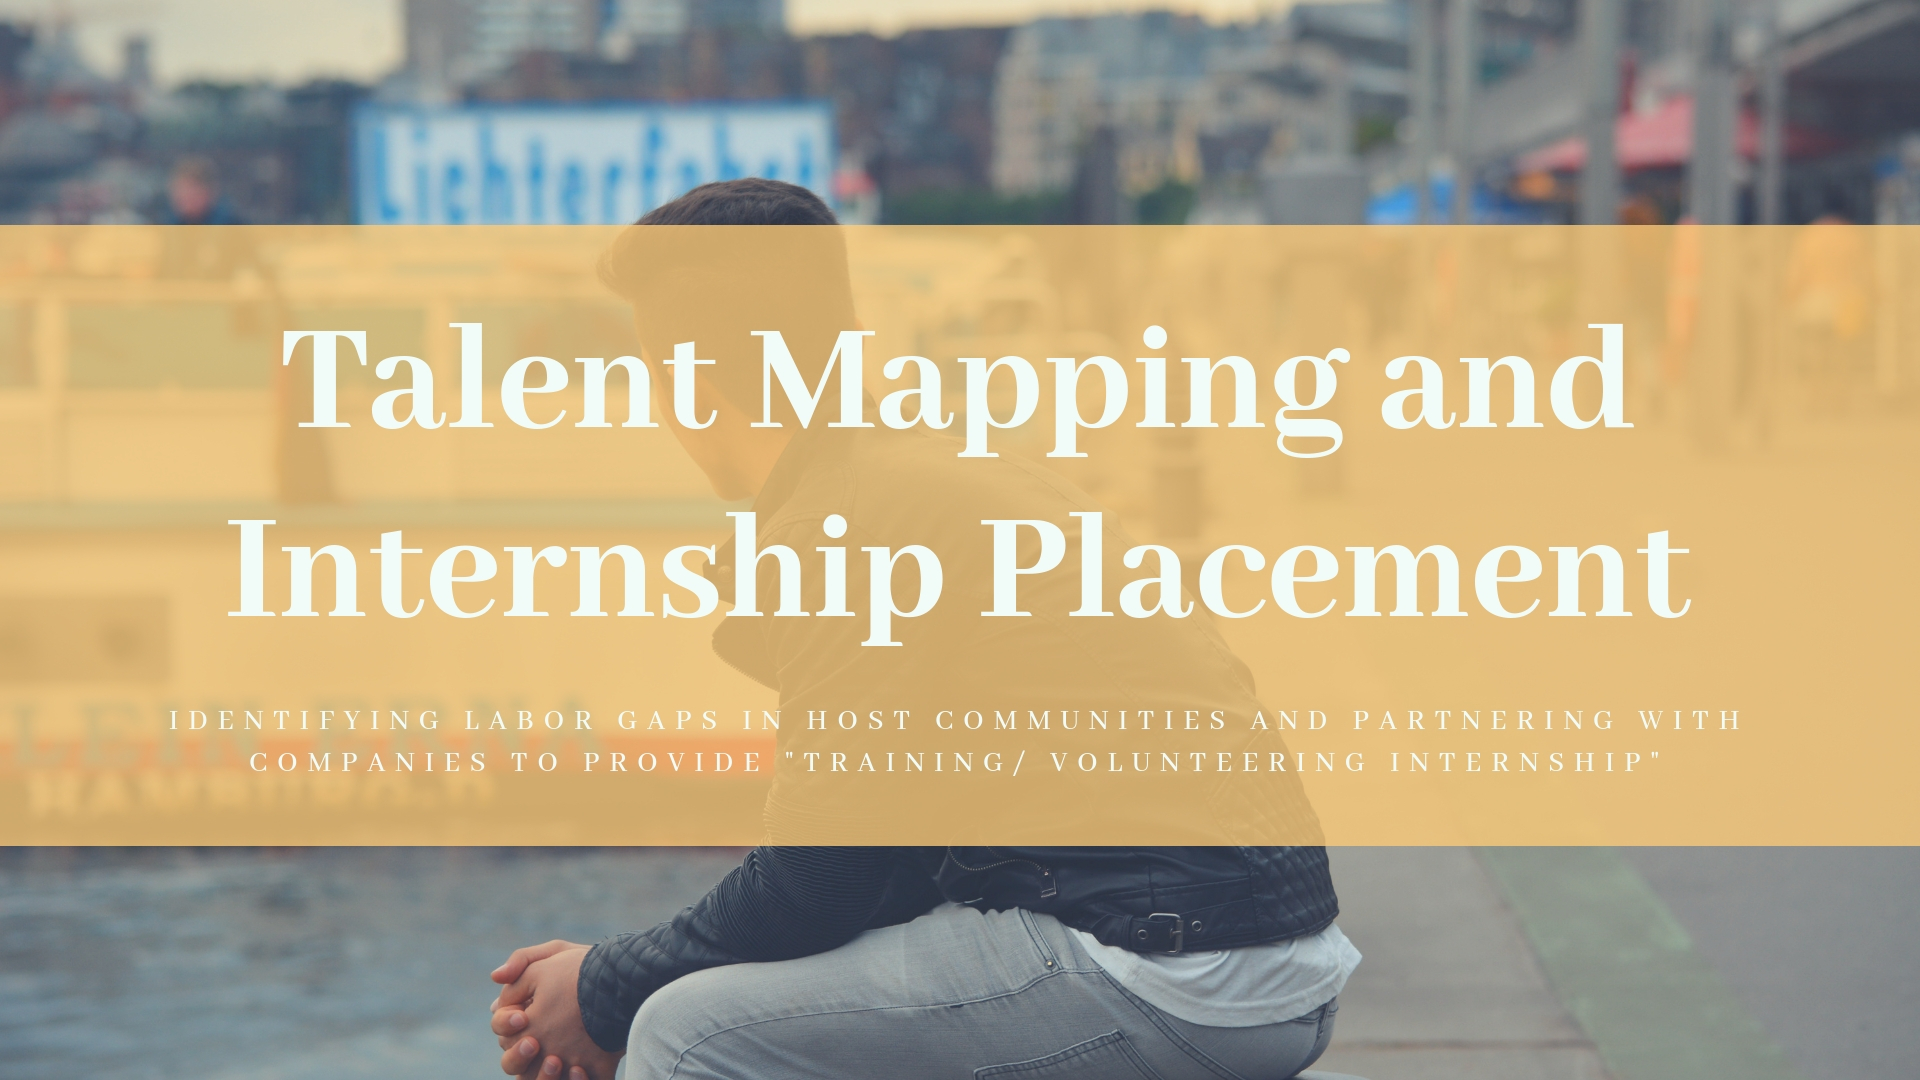 Talent mapping and internship placement